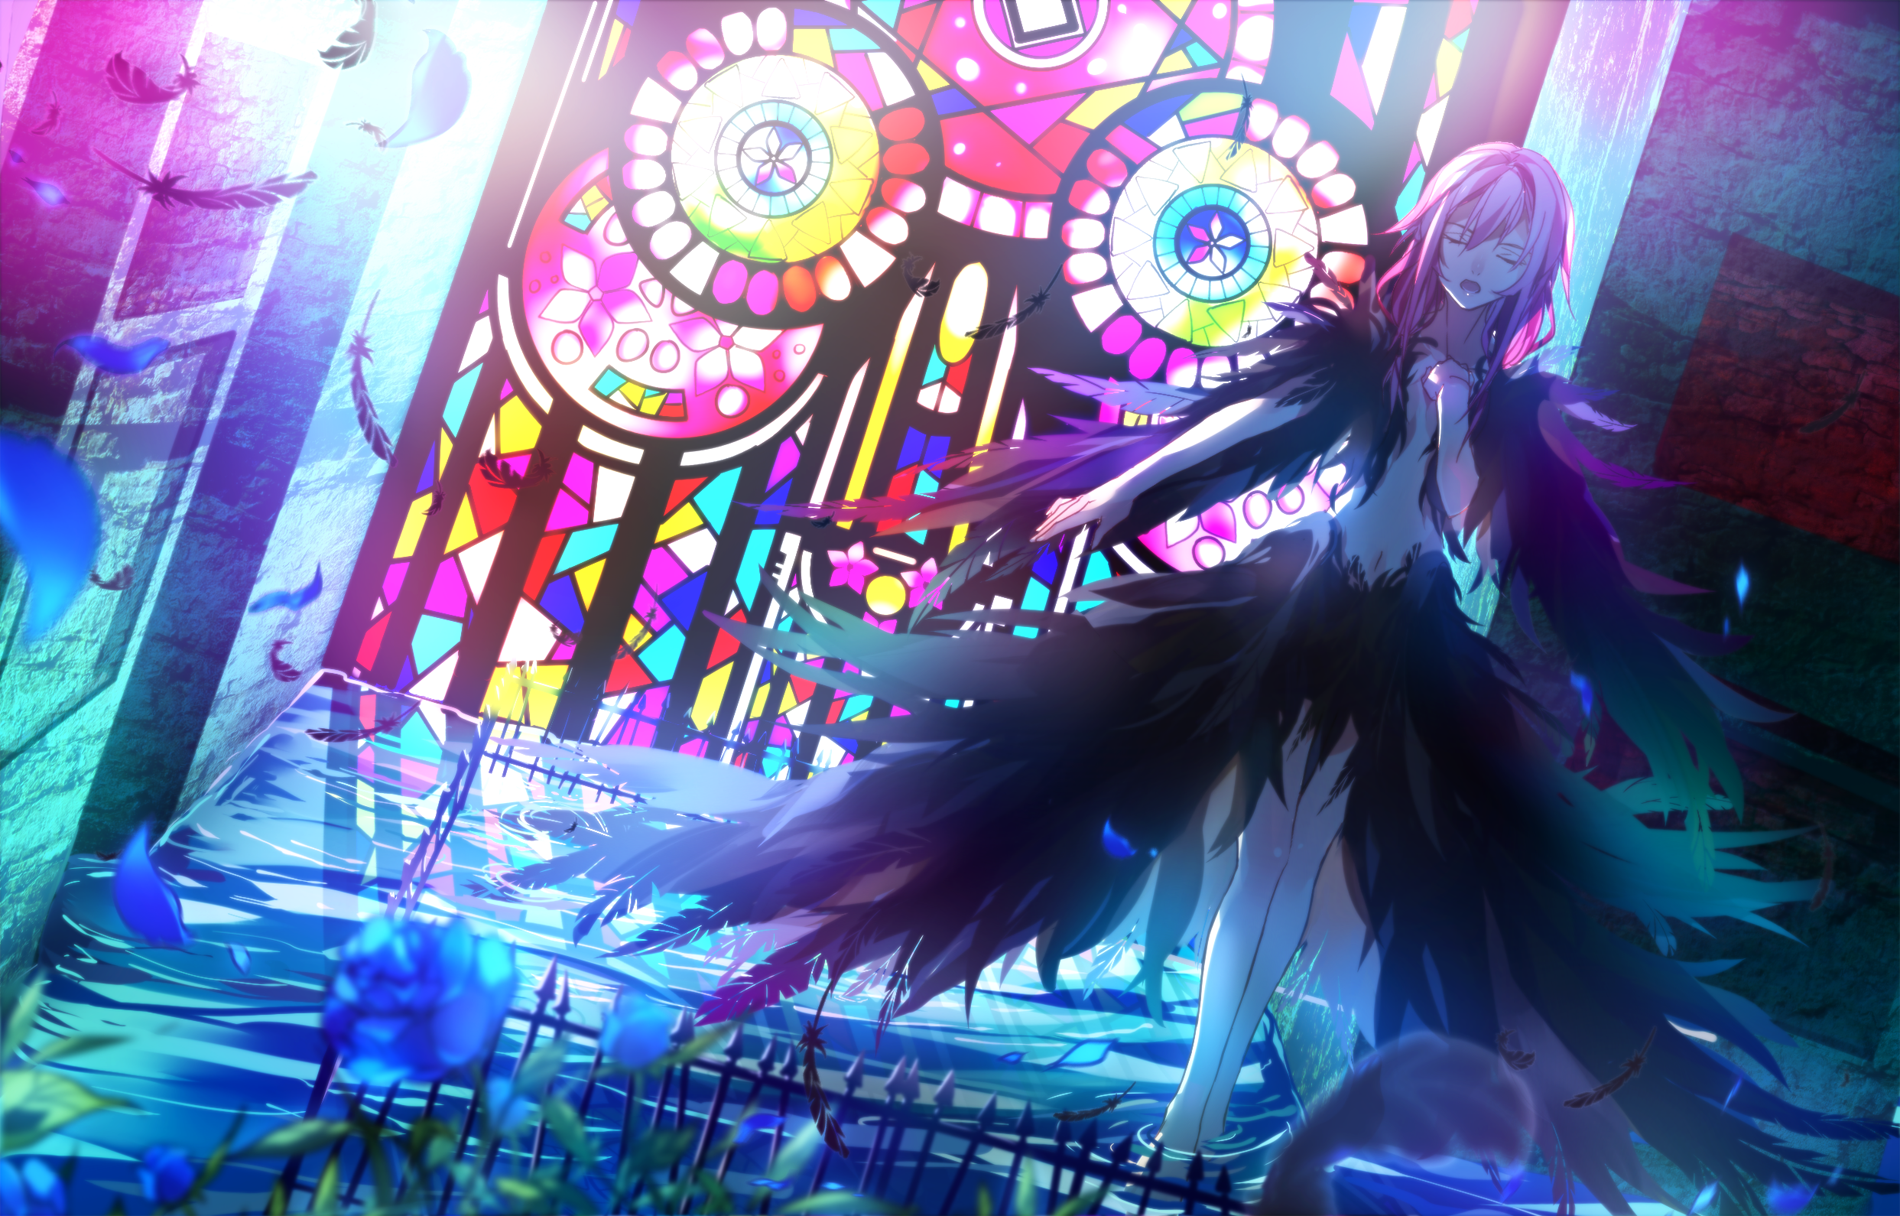 Yuzuriha Inori Anime, Anime wallpaper, Awesome anime